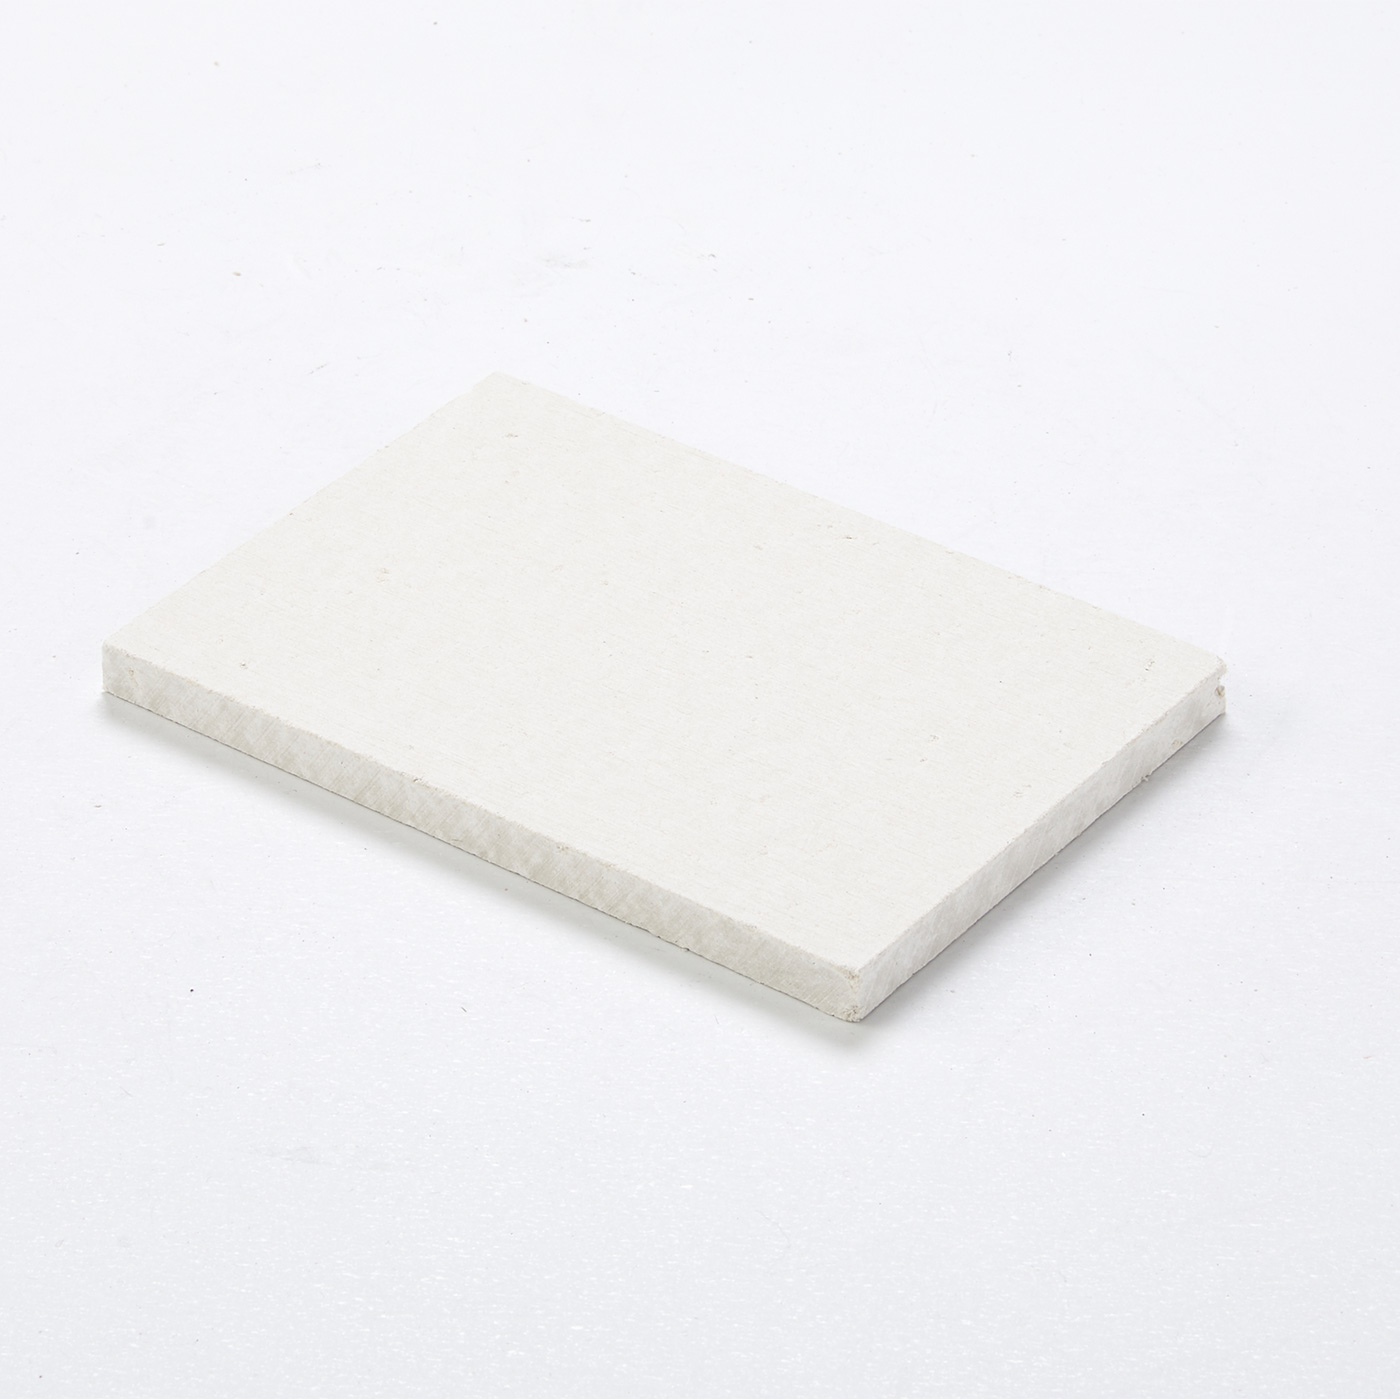 ROKU® V8 Gypsum Board